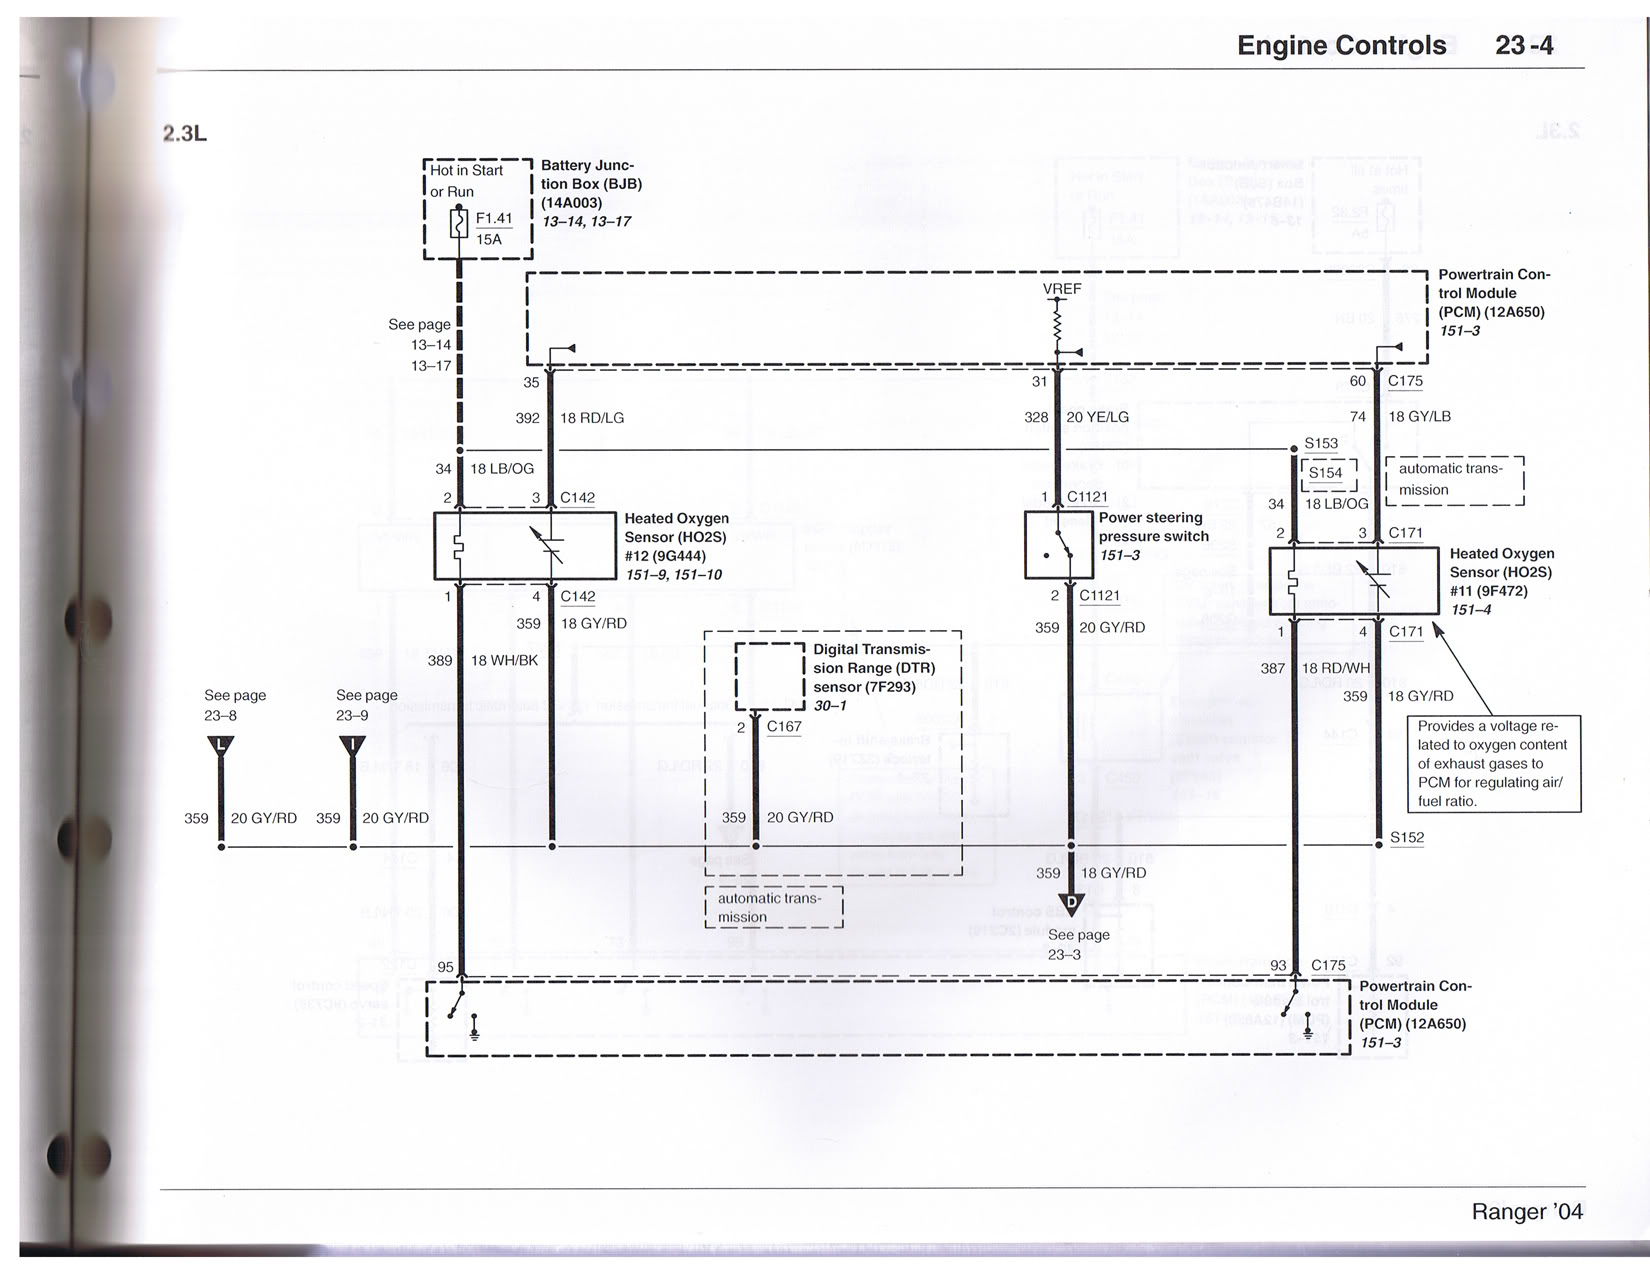 Wiring Diagram Electric Ford Ranger 2 3 39 Images Bronco Ii Diagrams 965700 Wire 183476d1501435560 2004 2006 Huge Pics Cci00007resize665